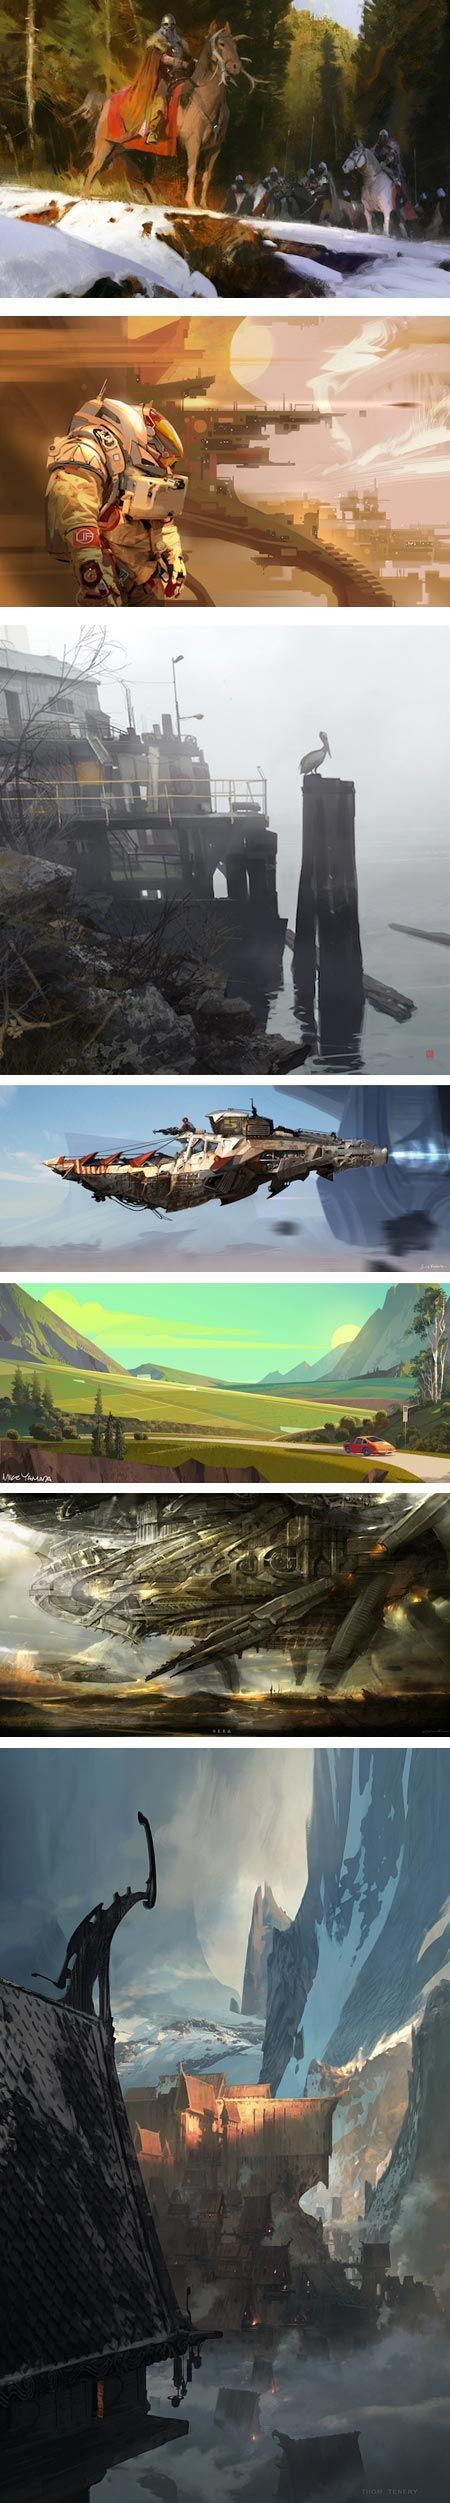 Painting in Pixels, An Exhibition of Concept Art at the Riverside Art Museum: Jaime Jones, Tyler West, Thierry Doizon (aka barontieri), Scott Robertson, Mike Yamada, Cecil Kim, Thom Tenery: